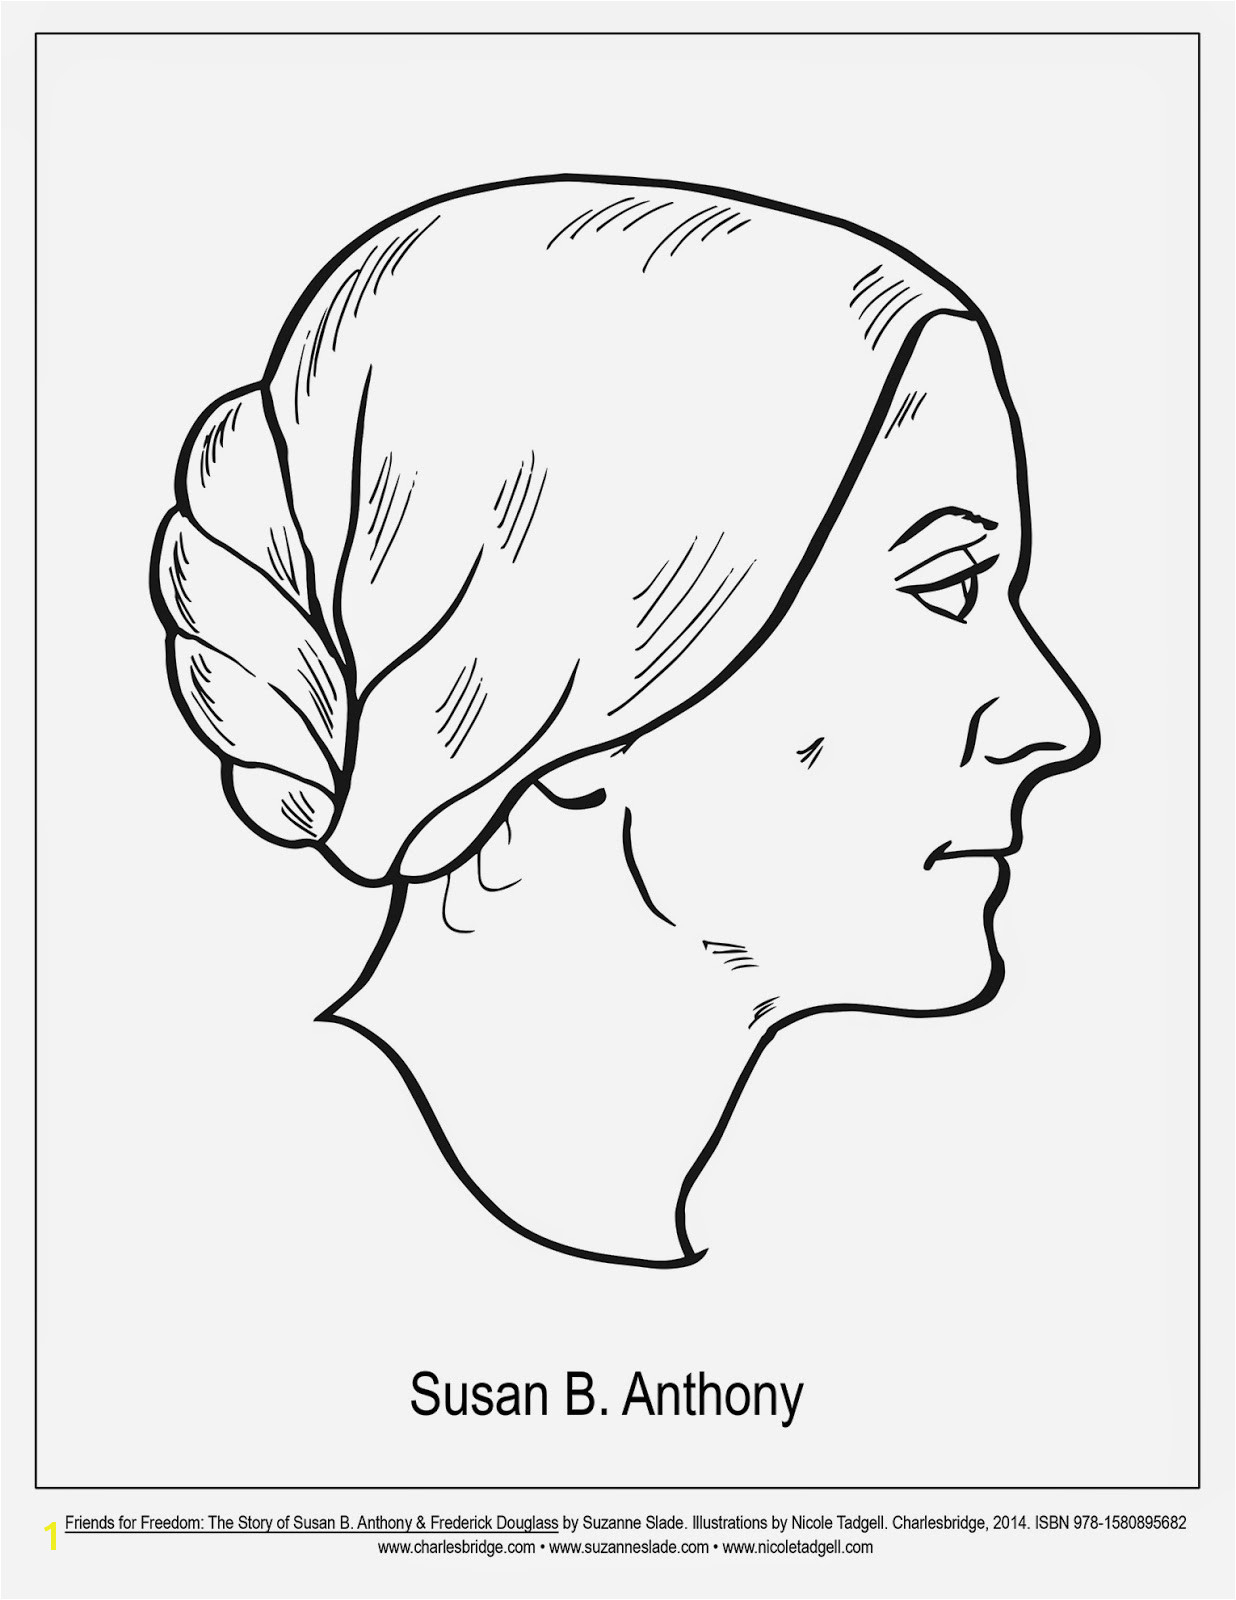 Nicole Tadgell Ilration Coloring Pages For Friends Freedom Susan B Anthony Coloring Page